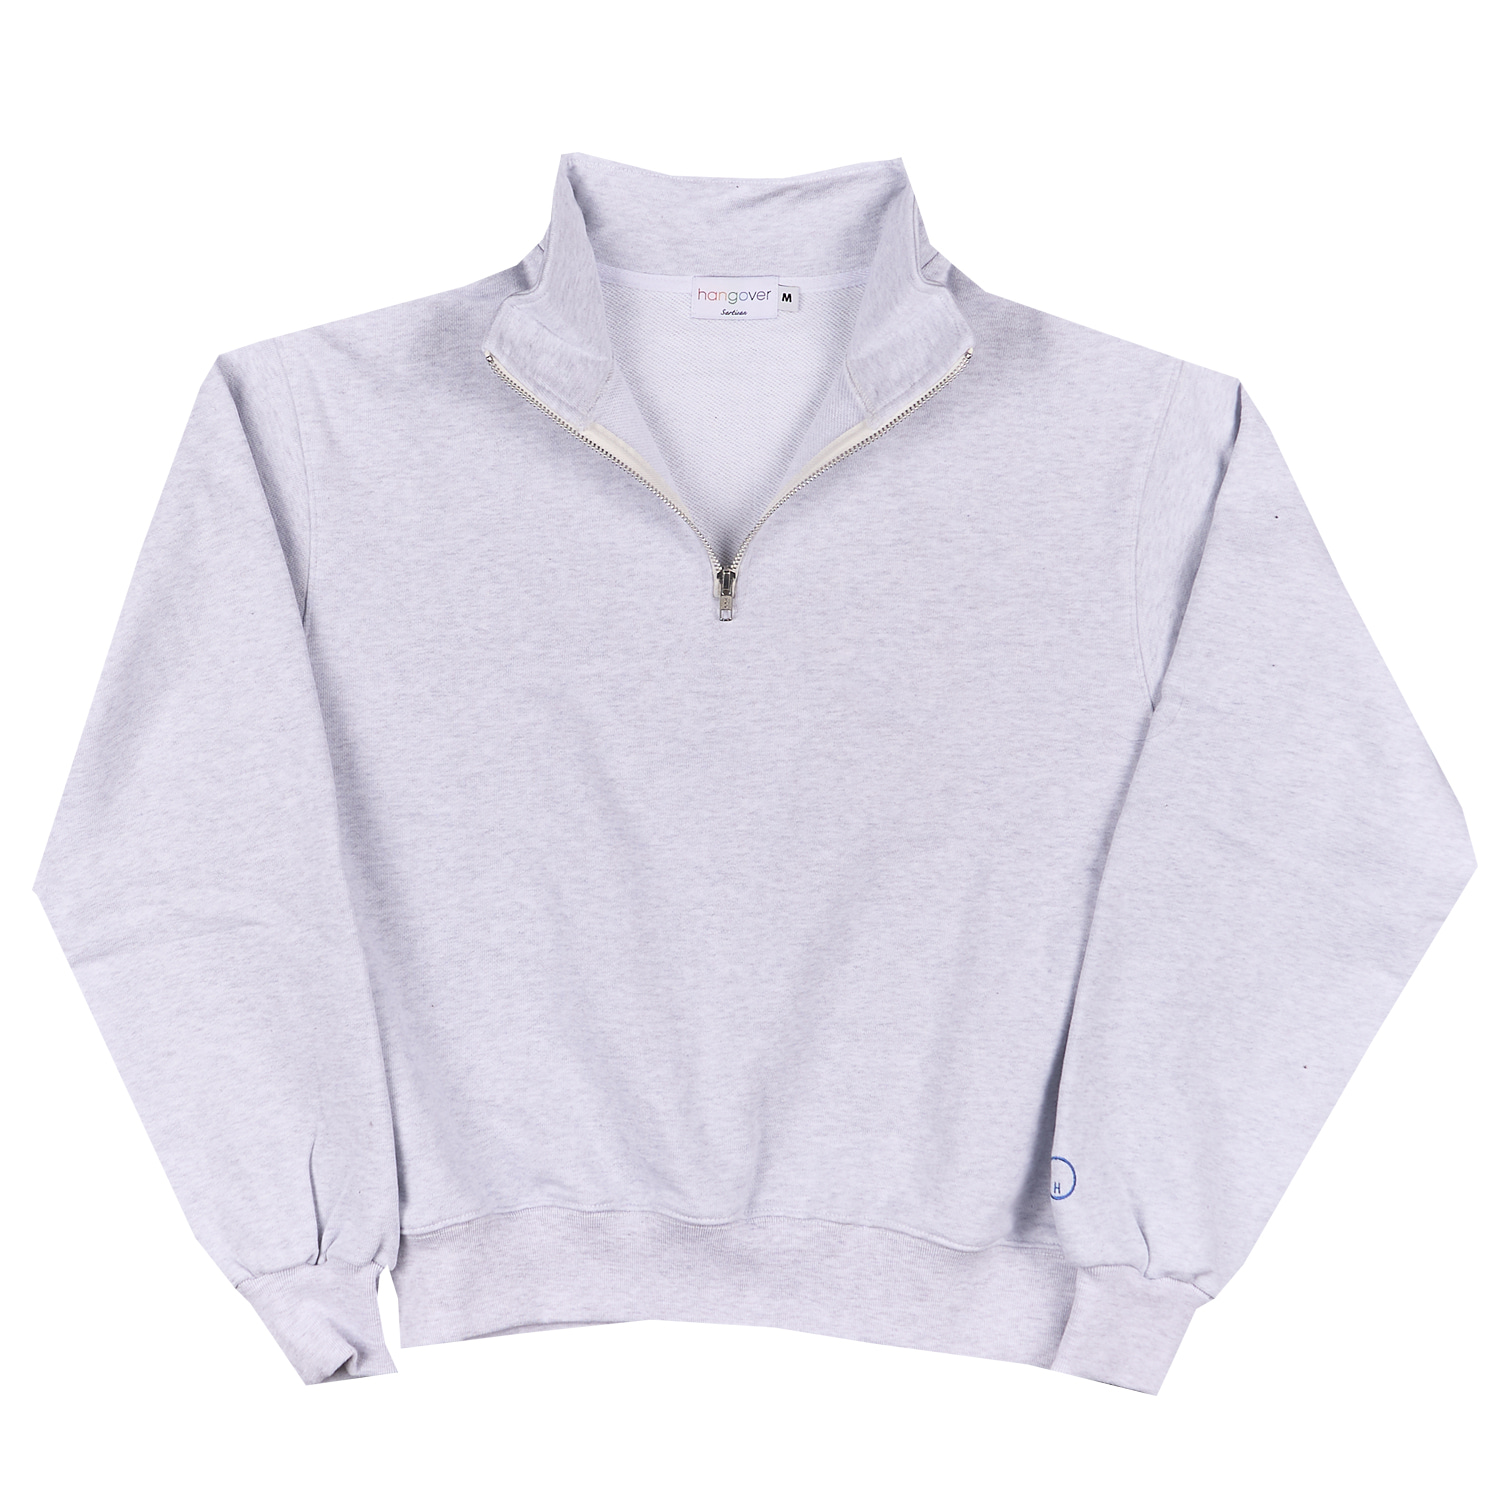 HALF ZIP-UP SWEATSHIRTS_LIGHT GRAYHangover(행오버)